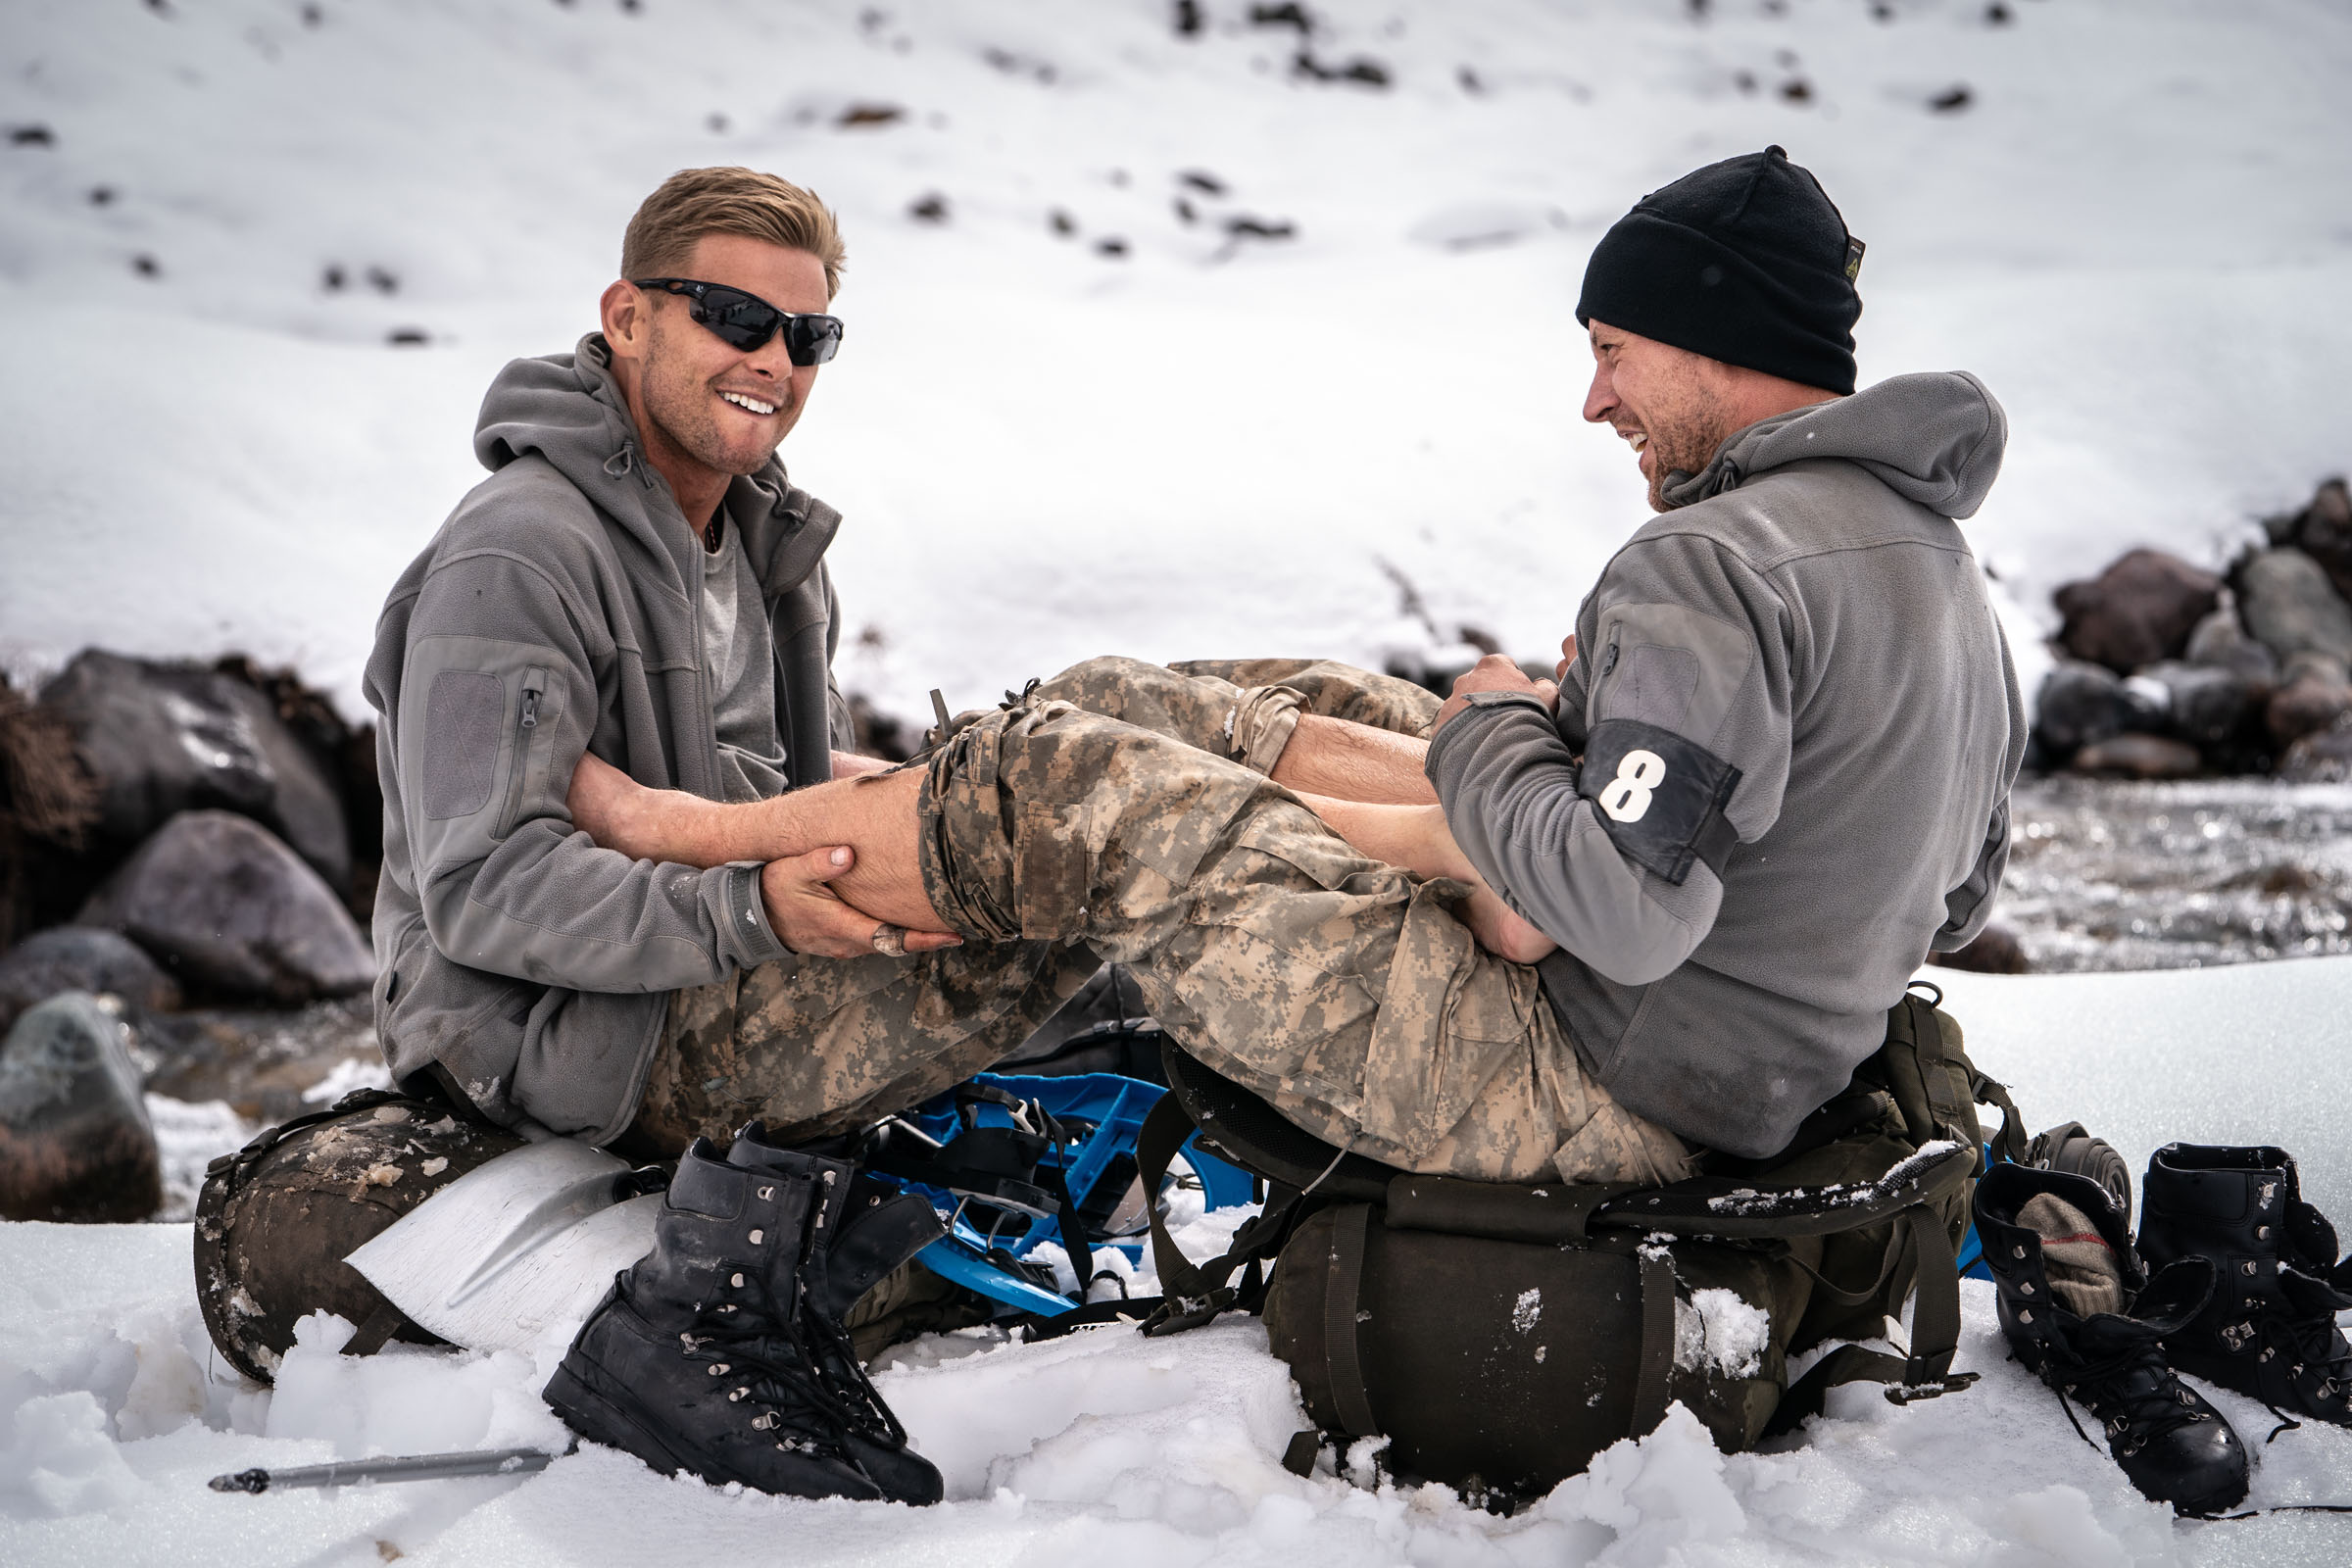 Recruits Jeff Brazier and Wayne Bridge warm each others feet after wading through a freezing stream  Episode 3  Minnow Films / Channel 4